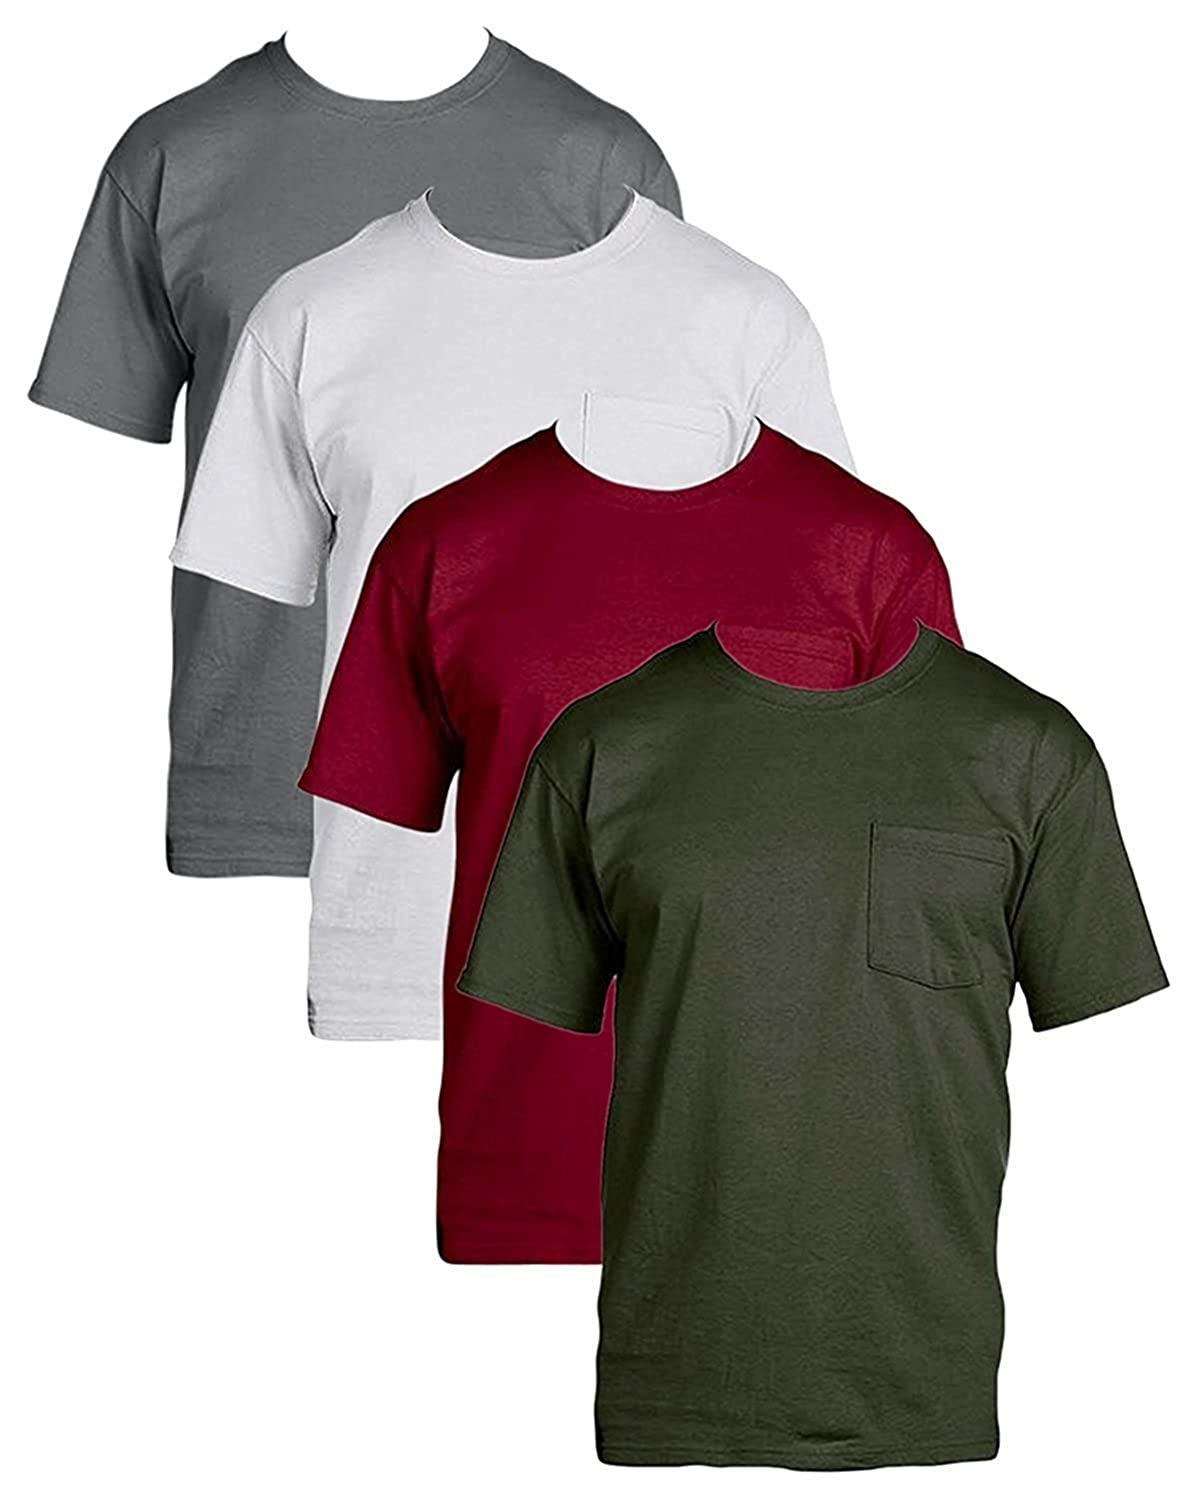 036dbe4a Fruit Of The Loom Men's Pocket Crew Neck T-Shirt, Assorted, Medium (Pack Of  4) | Amazon.com